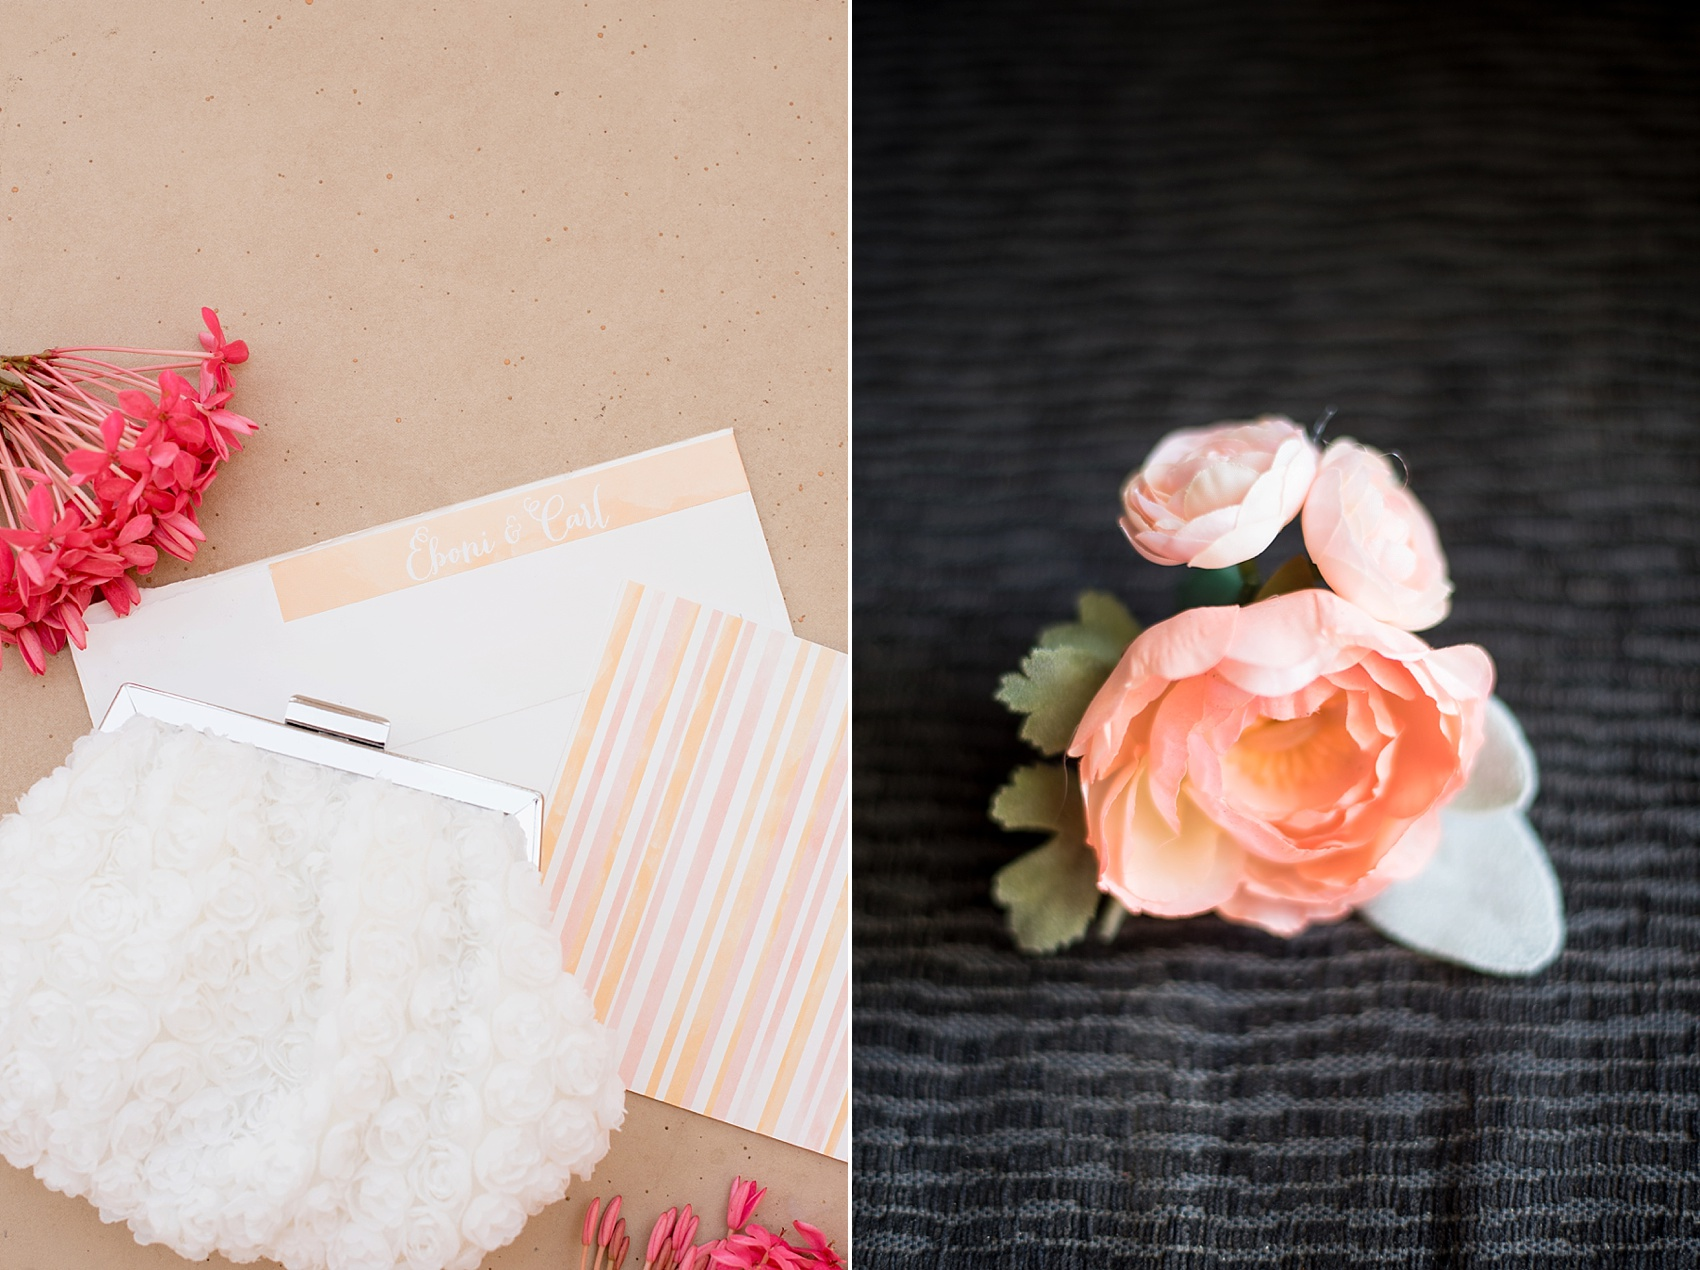 Iberostar Jamaica wedding photos, corsage and invitation. Images by Mikkel Paige Photography.